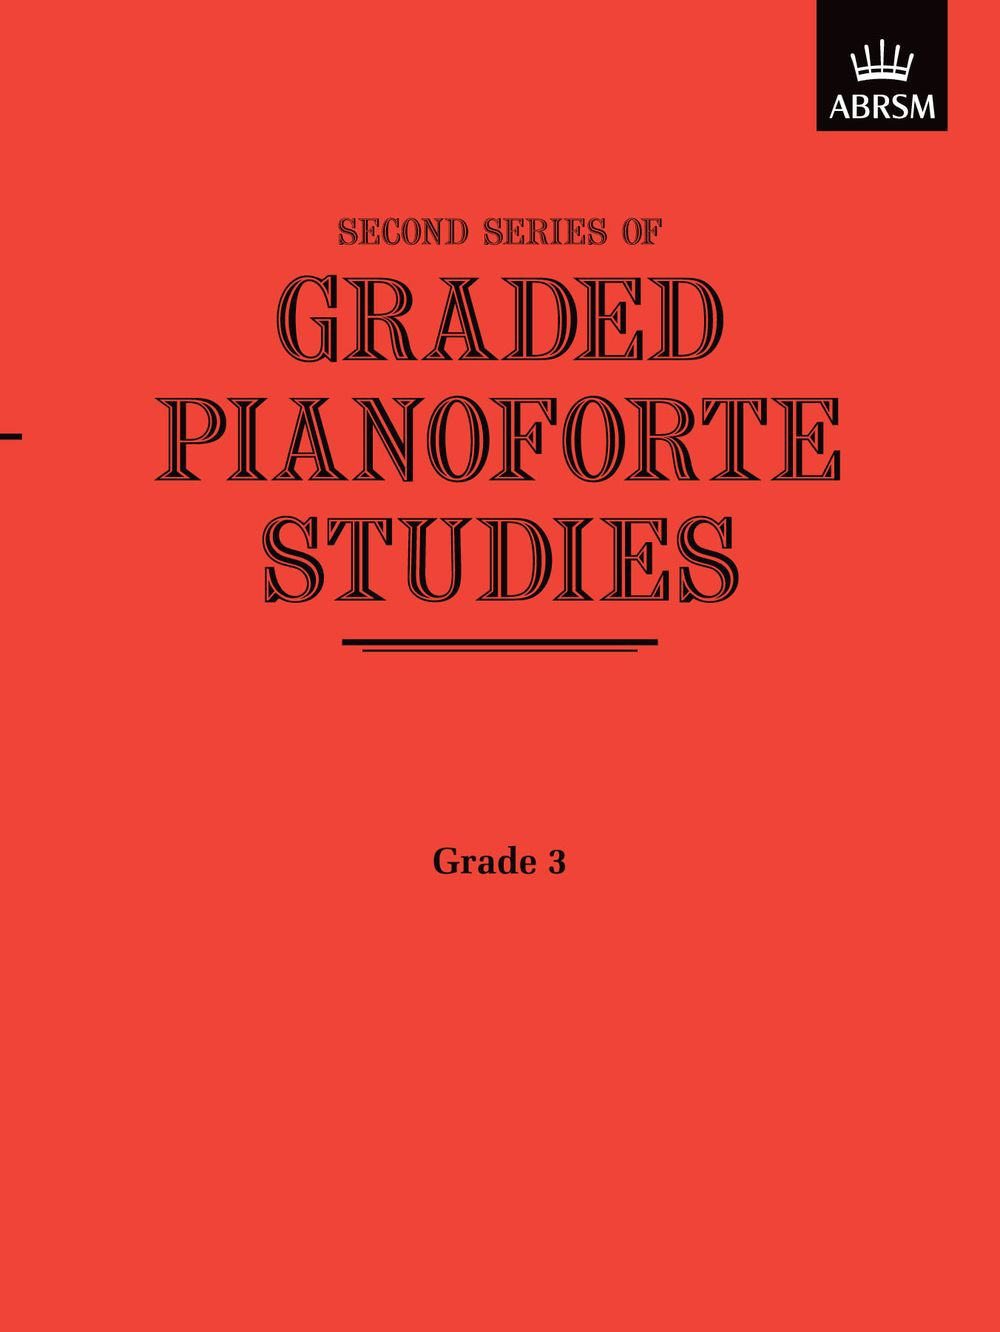 Graded Pianoforte Studies  Second Series  Grade 3: Piano: Study